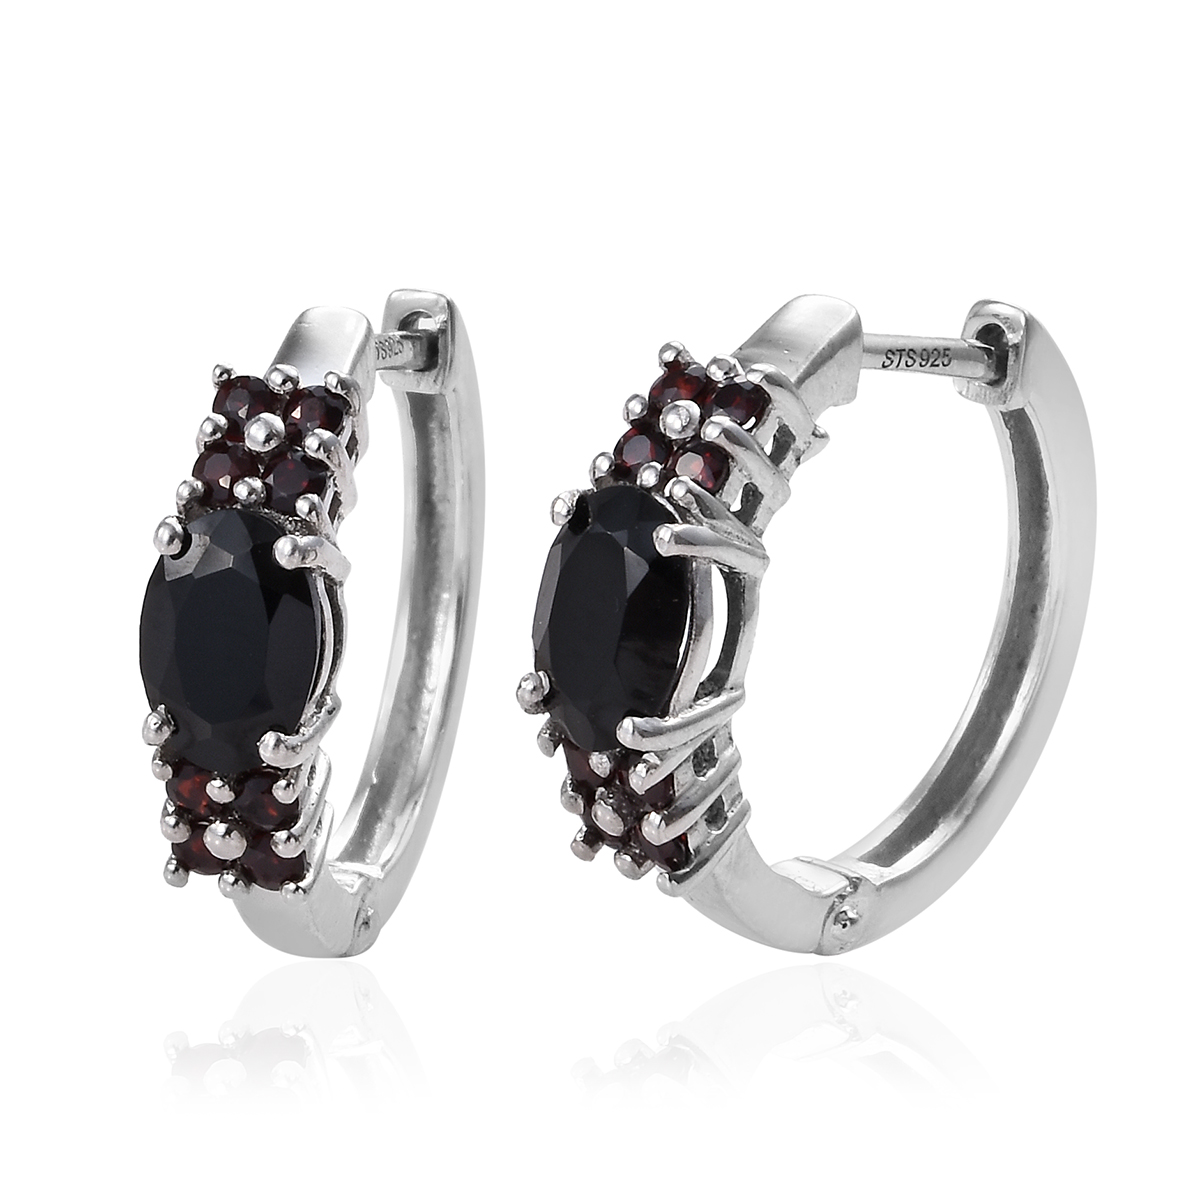 89acf72e5 Details about Silver Platinum Plated Black Spinel Garnet Huggies Hoops Hoop  Earrings Cttw 2.1